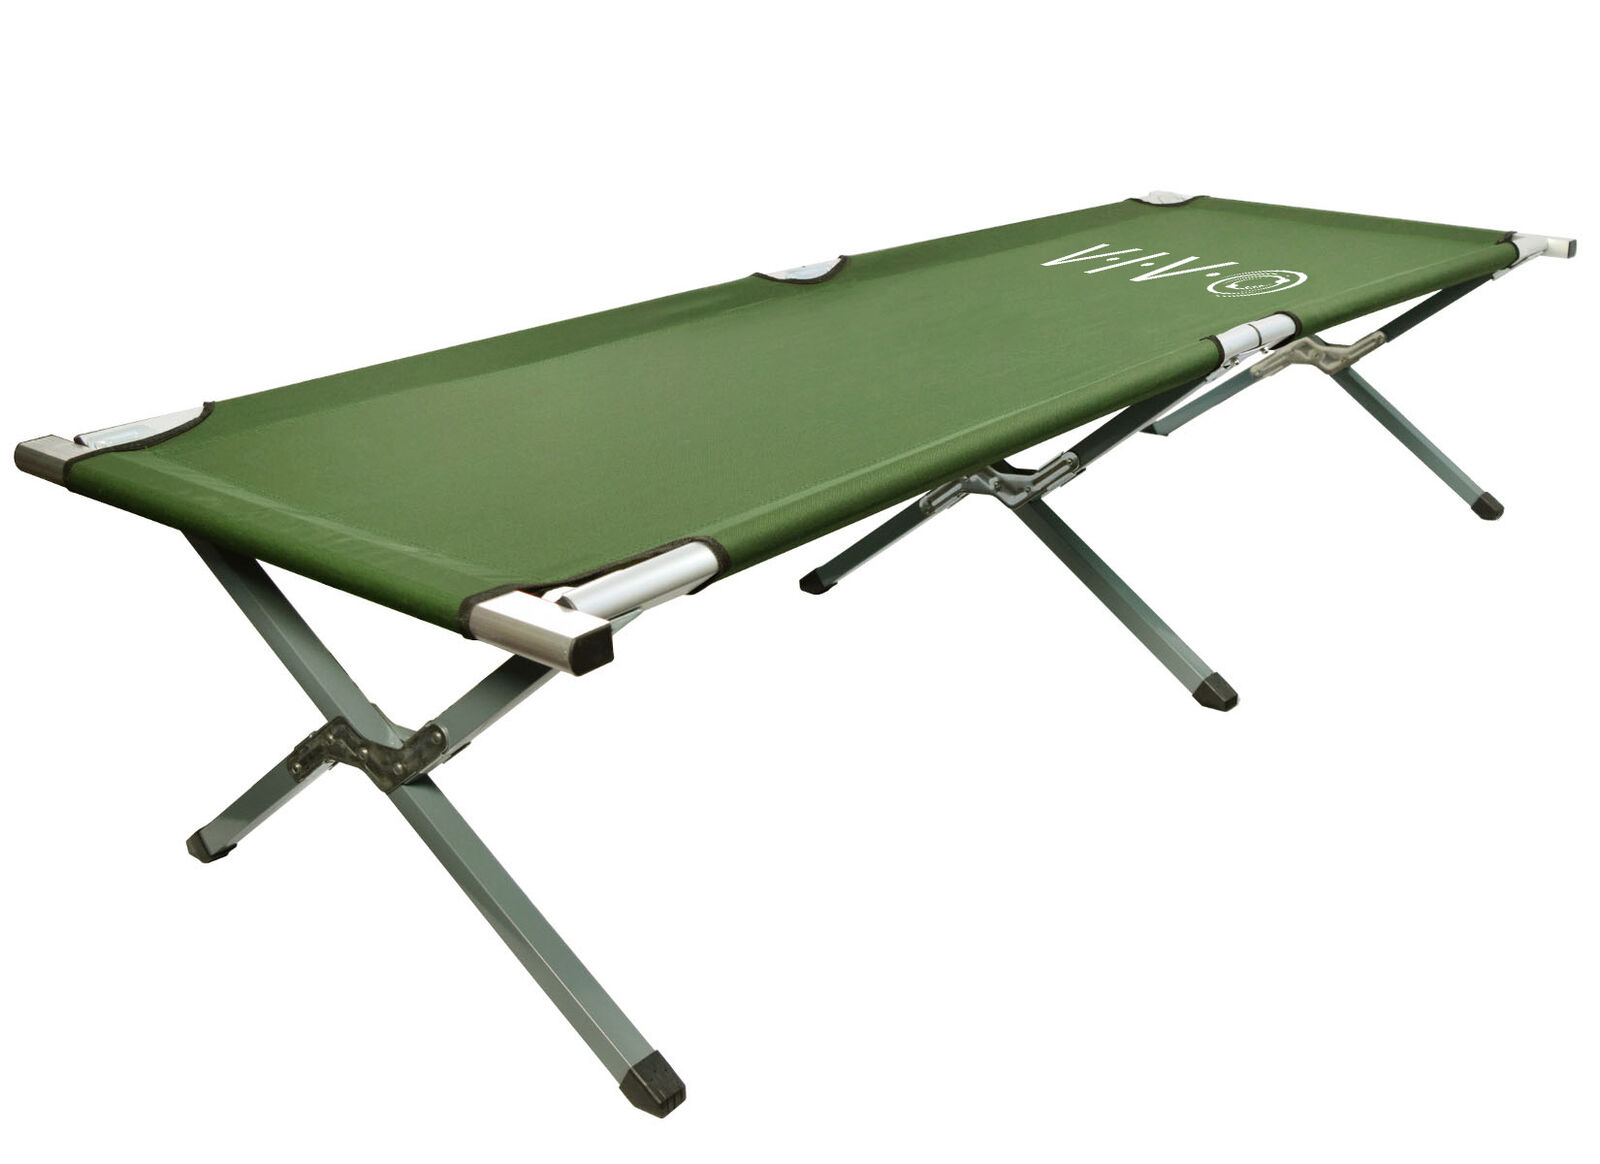 VIVO  Green Camping Cot, Fold up Bed, Military Style Cot, Carrying Bag Included  a lot of surprises